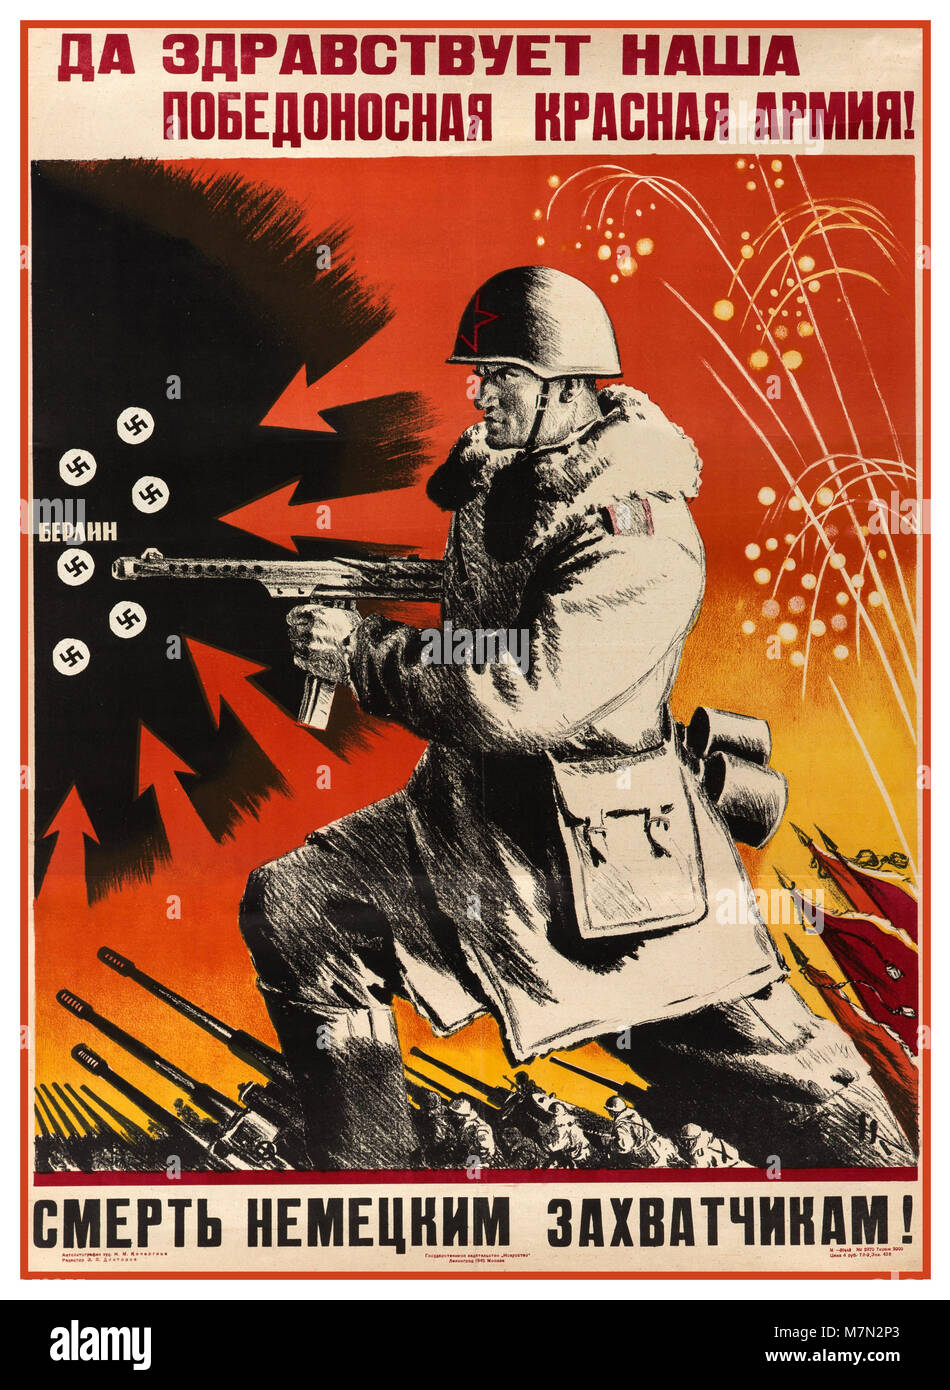 Vintage WW2 1940 Russian Propaganda poster 'Long live our victorious Red Army!' - 'Death to the German - Stock Image